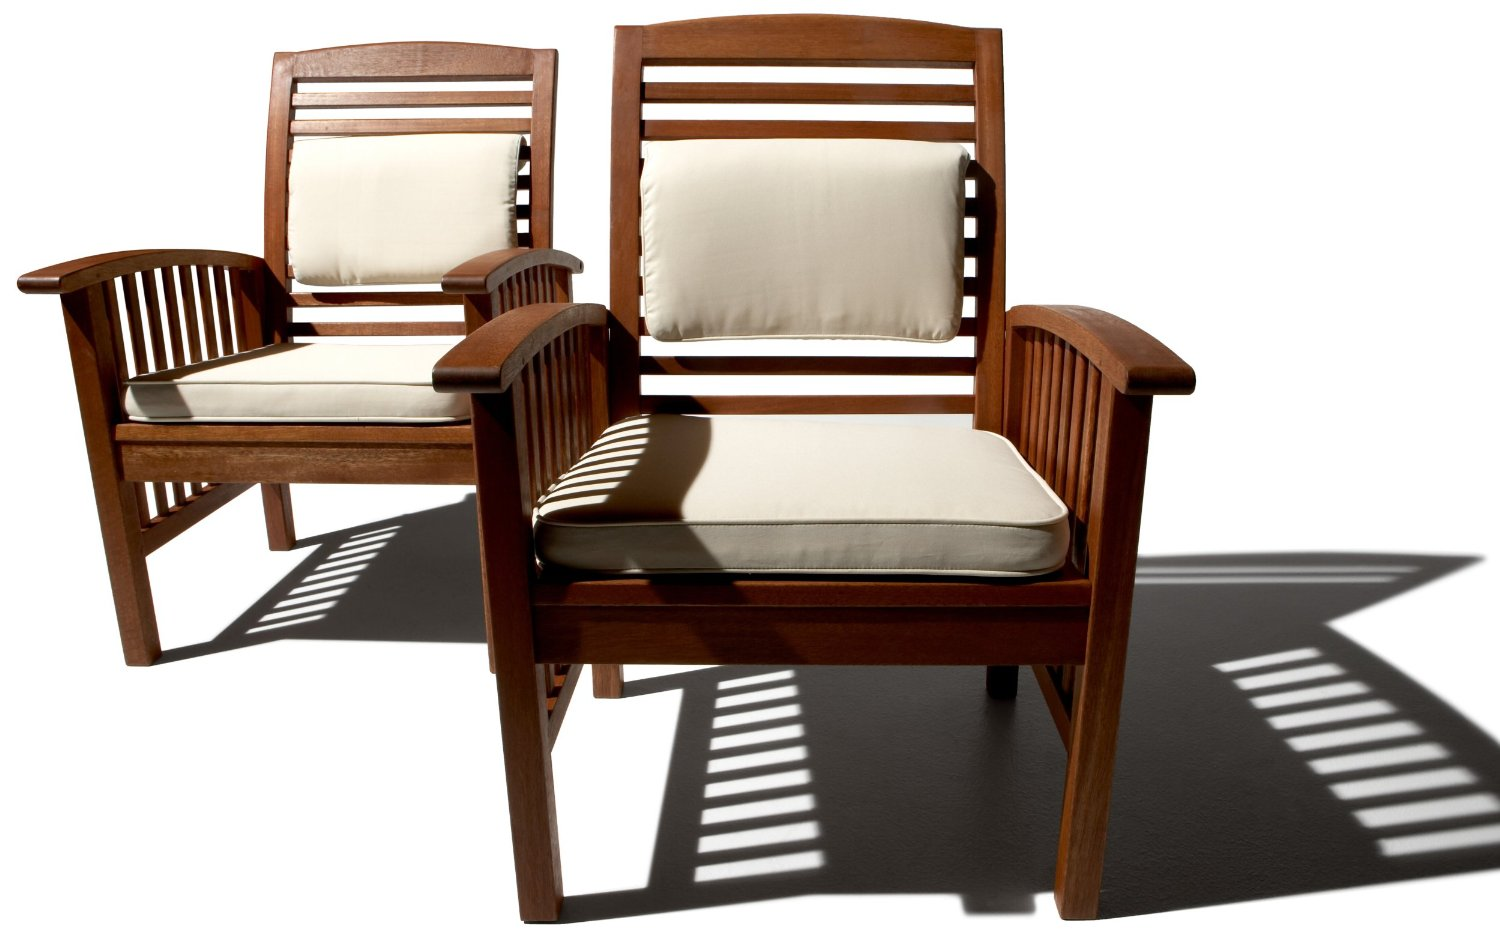 strathwood gibranta all weather hardwood arm chair set of 2 - Patio Chair Cushions Clearance